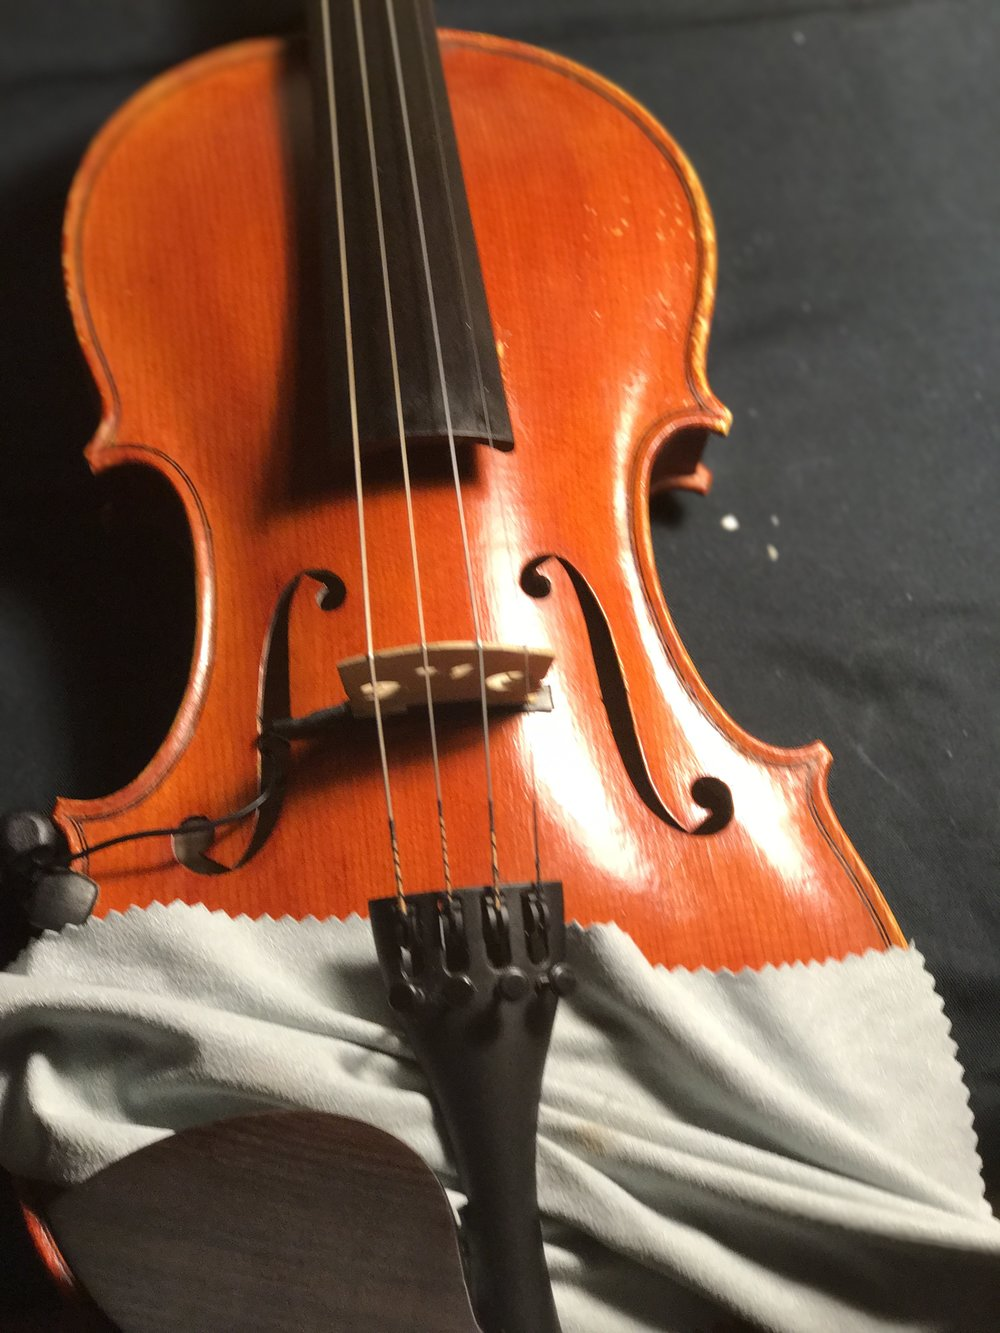 Wipe under tailpiece, chinrest and fingerboard. Rub at area under strings near the bridge. - Be aware of heat buildup. It is possible to damage the varnish with heat from friction.